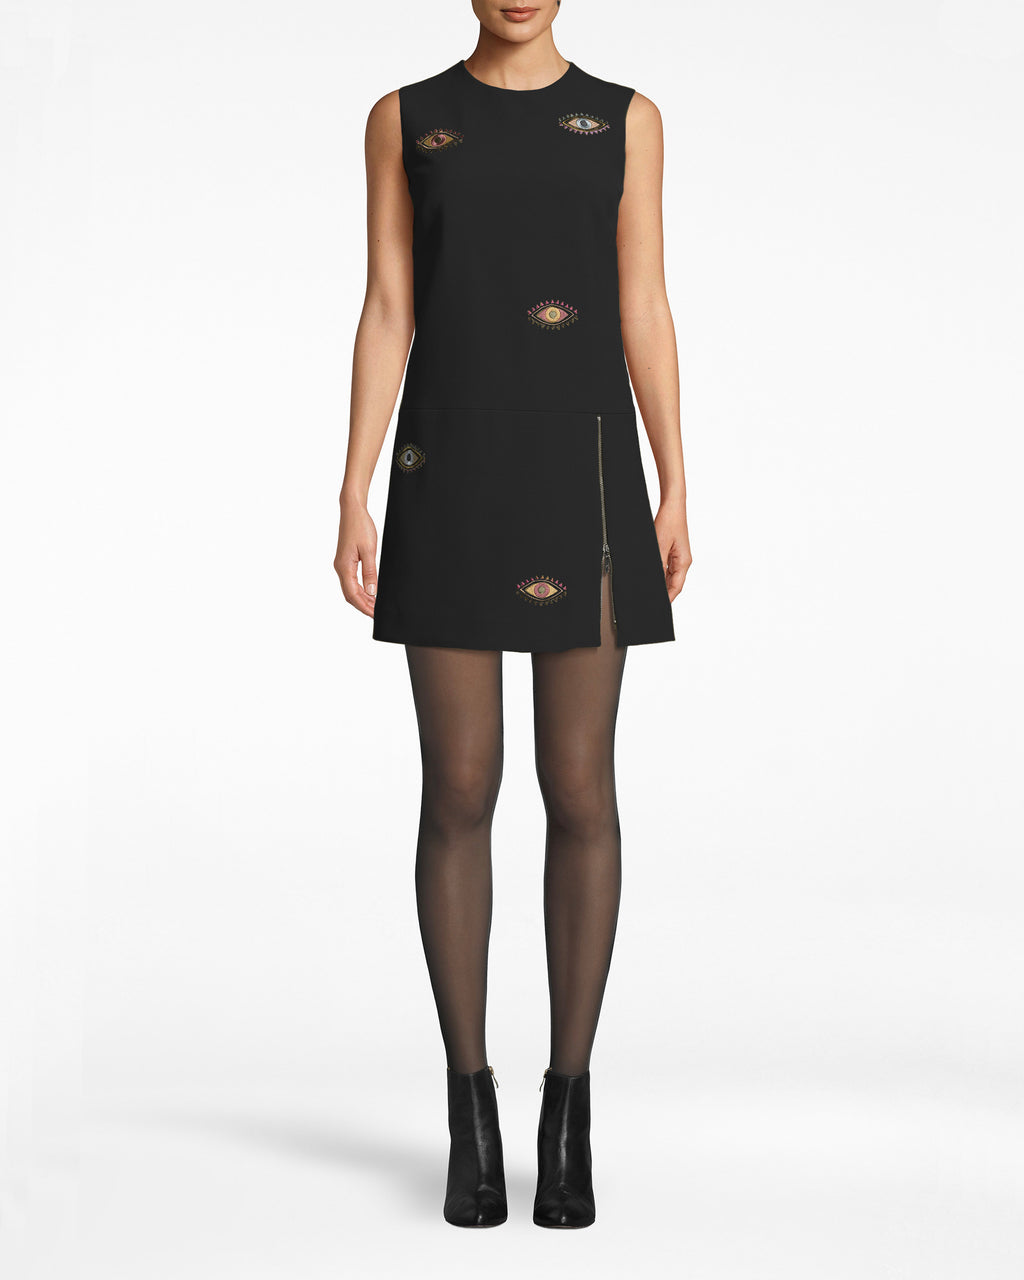 BQ10362 - Evil Eye Embroidered Mini Dress - dresses - short - Eyes on mod. This mini dress is reminiscent of the 60's, with an A-line silhouette and simple neckline. The thigh slit and Evil Eye patches add modern twists. Exposed back zipper for closure.